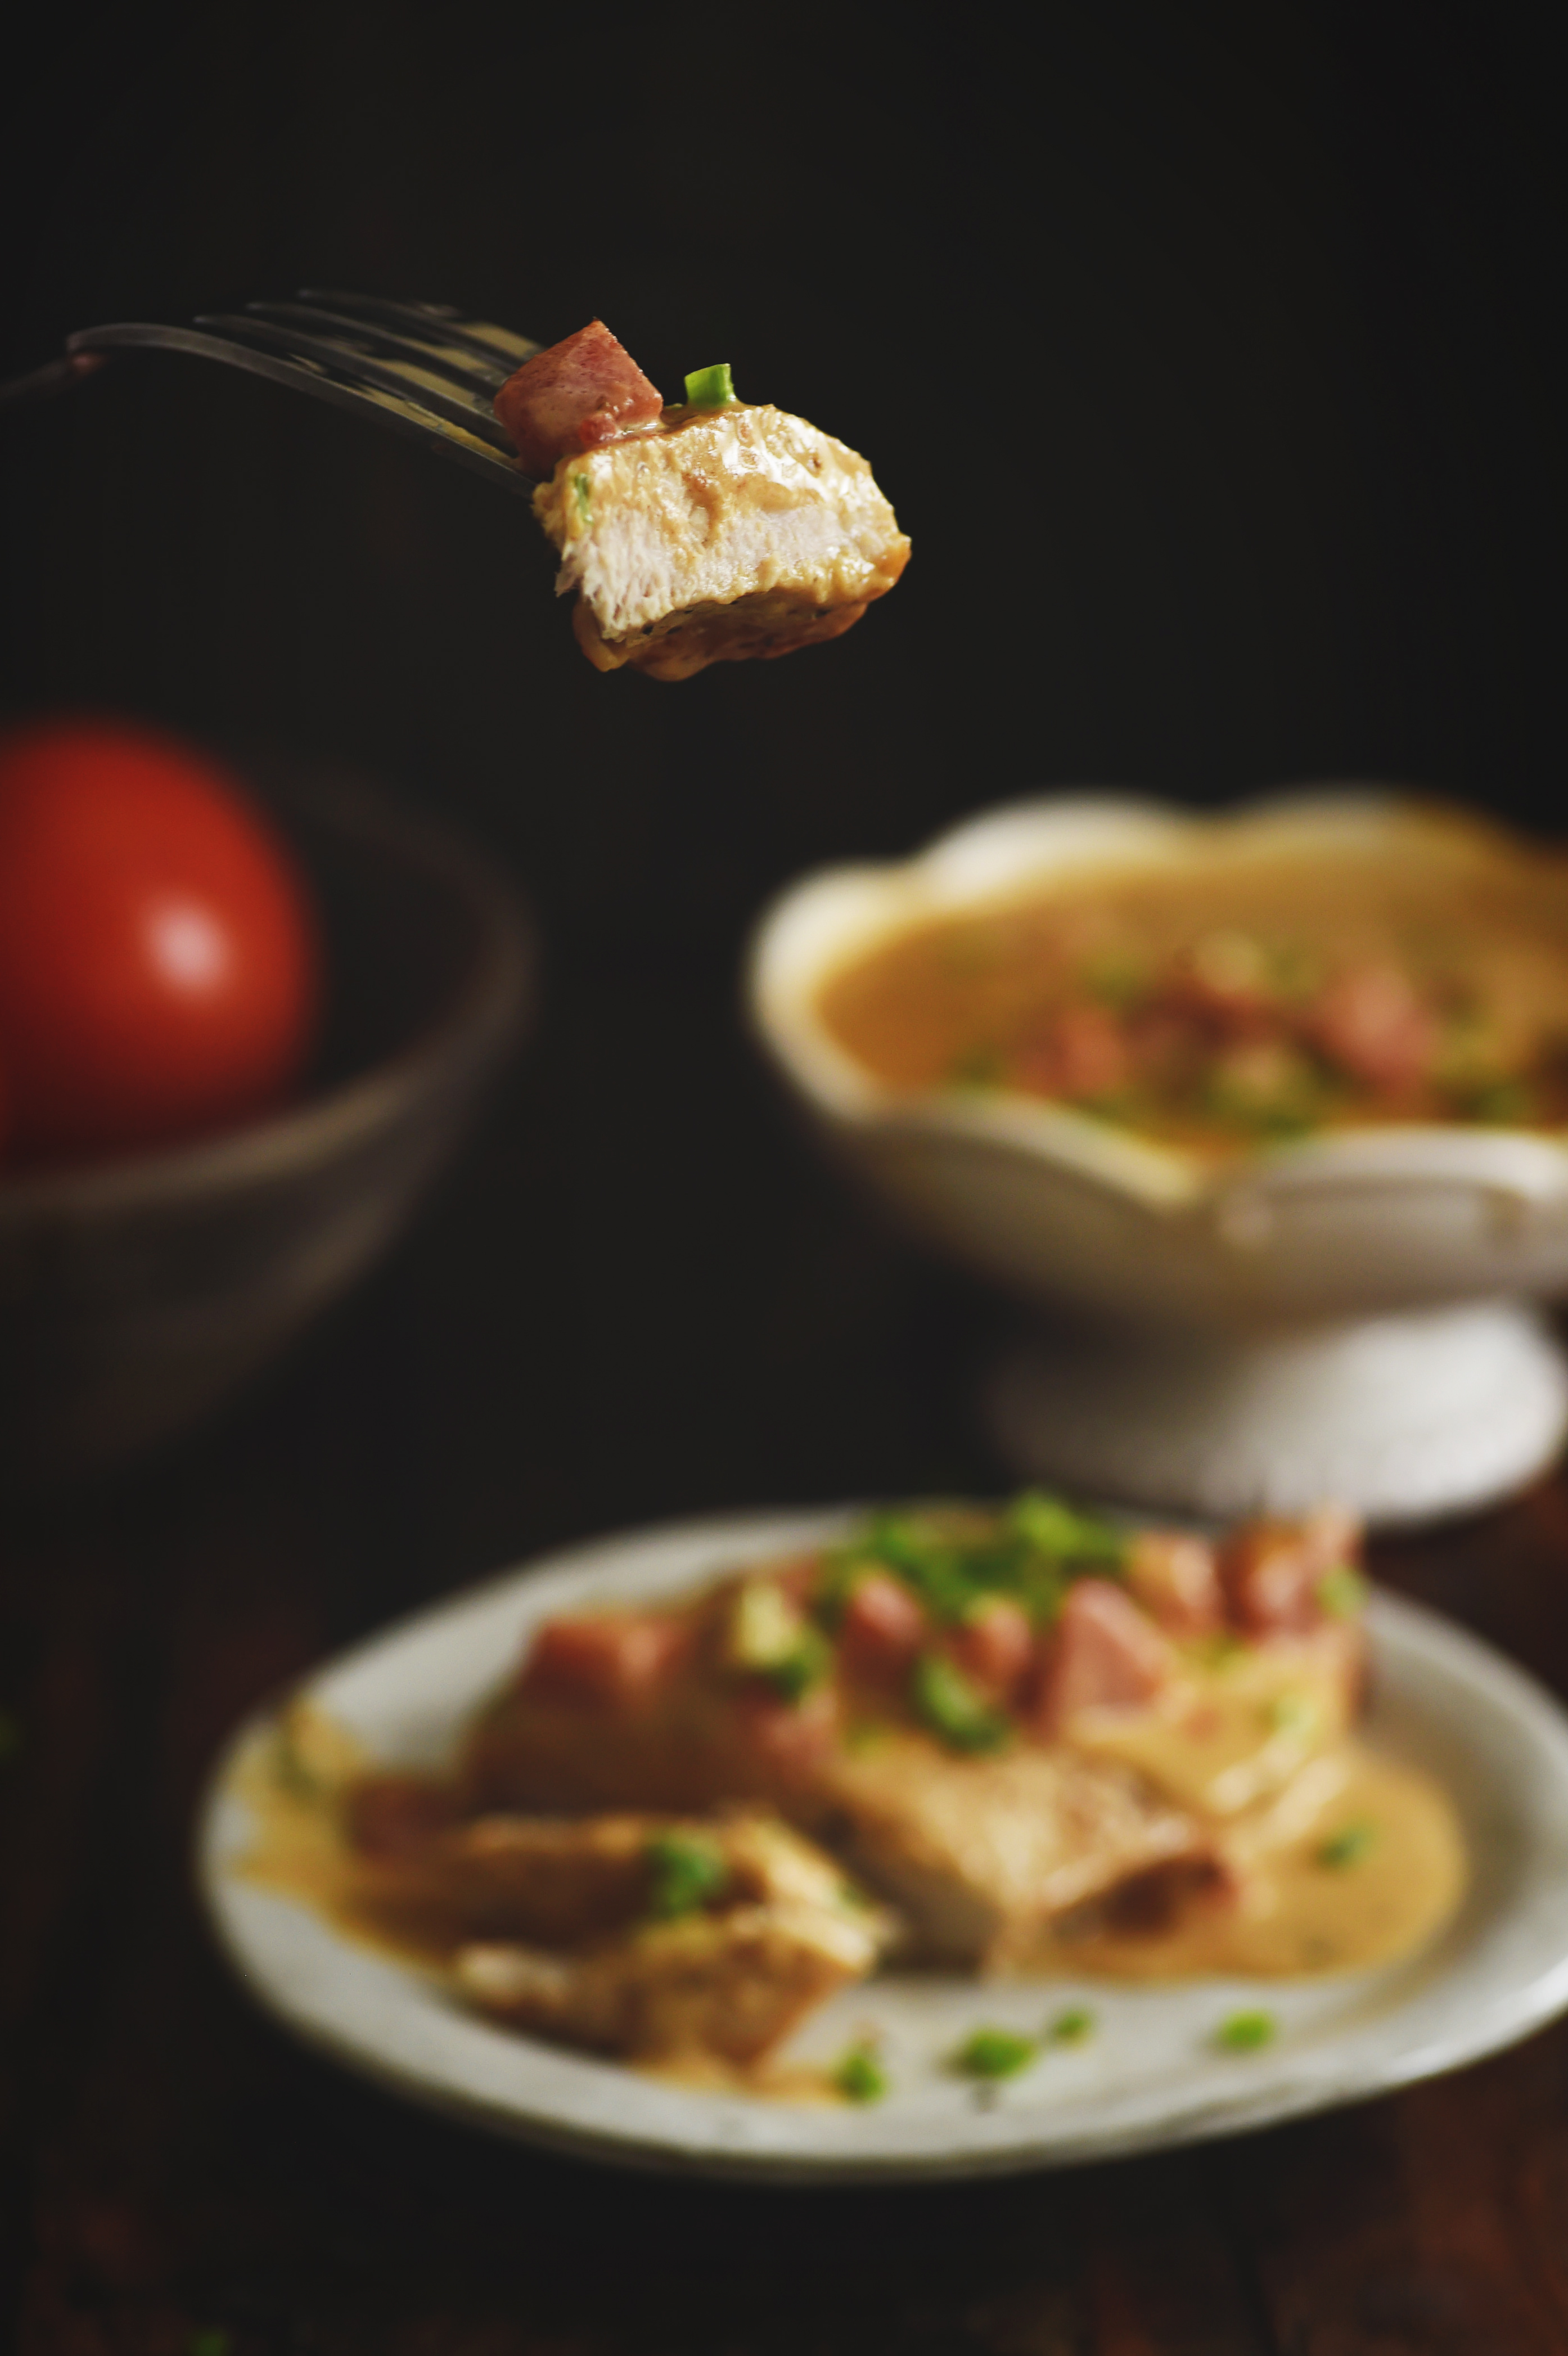 Boneless Pork Chops with Tomato Cream Sauce-Chop cut and a piece on a fork.